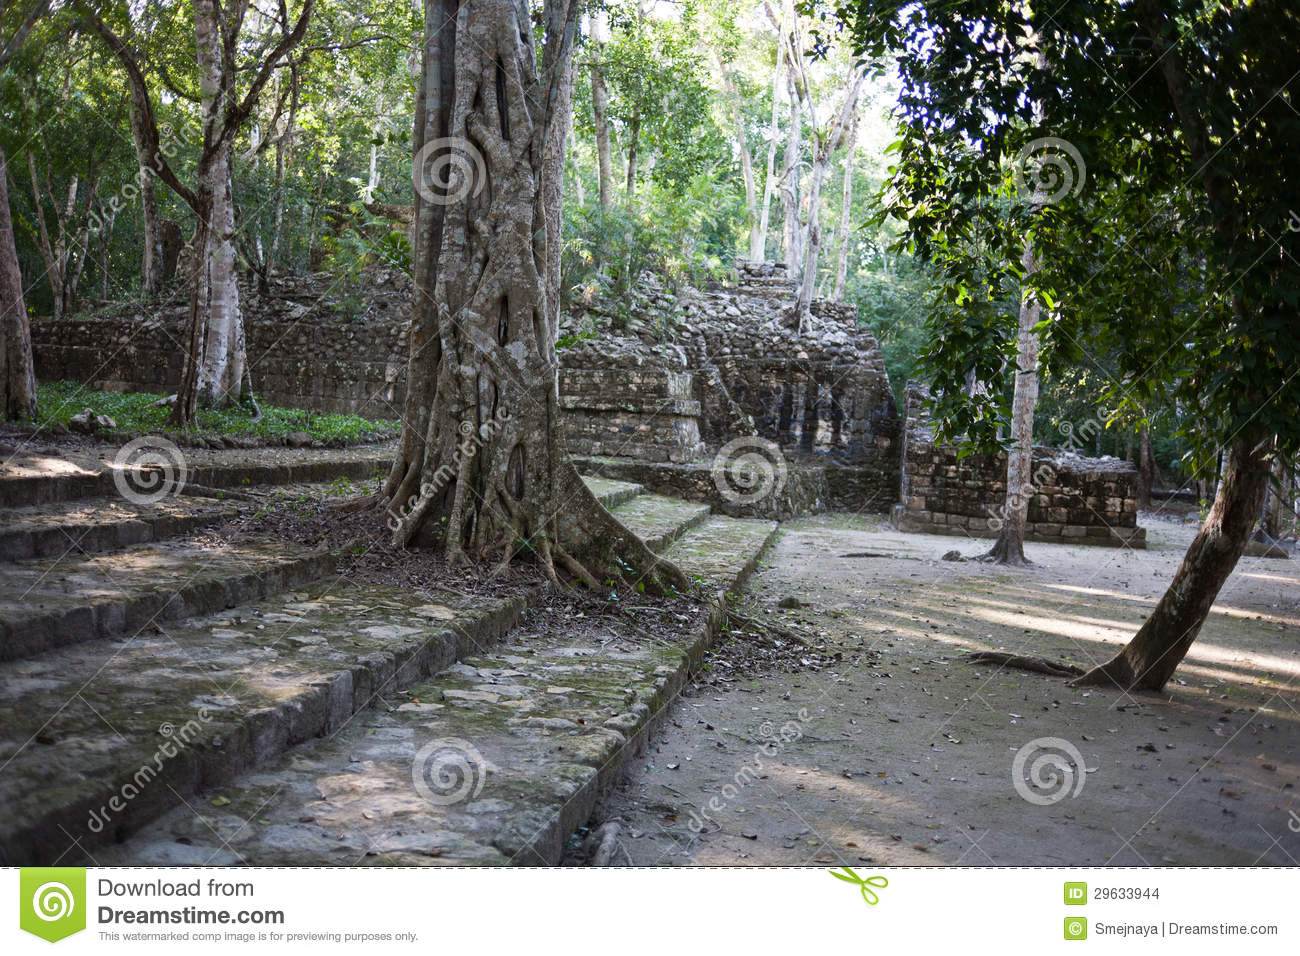 Calakmul - ancient mayan city in Mexico